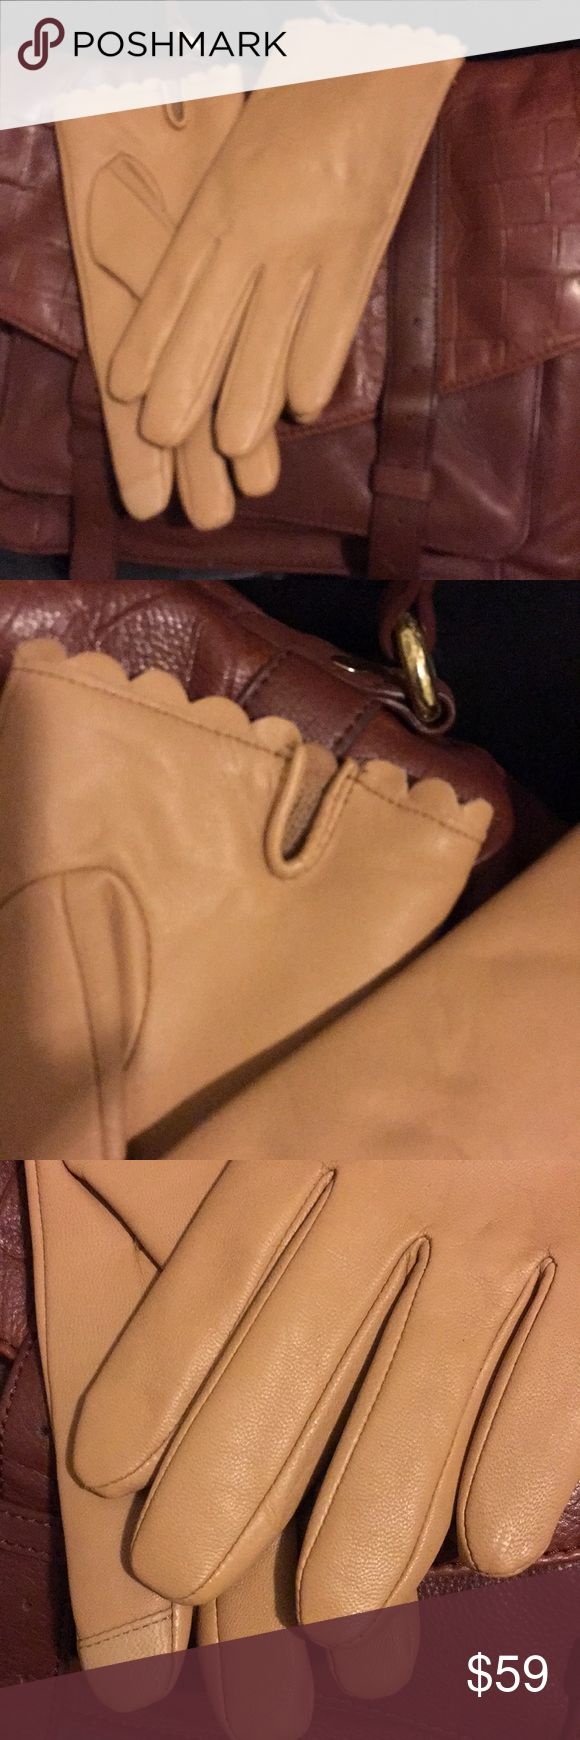 The Camel Glove Test! Leather gloves, scalloped edge, cell sensitive finger, a soft leather, cold nope! Banana Republic Accessories Gloves & Mittens